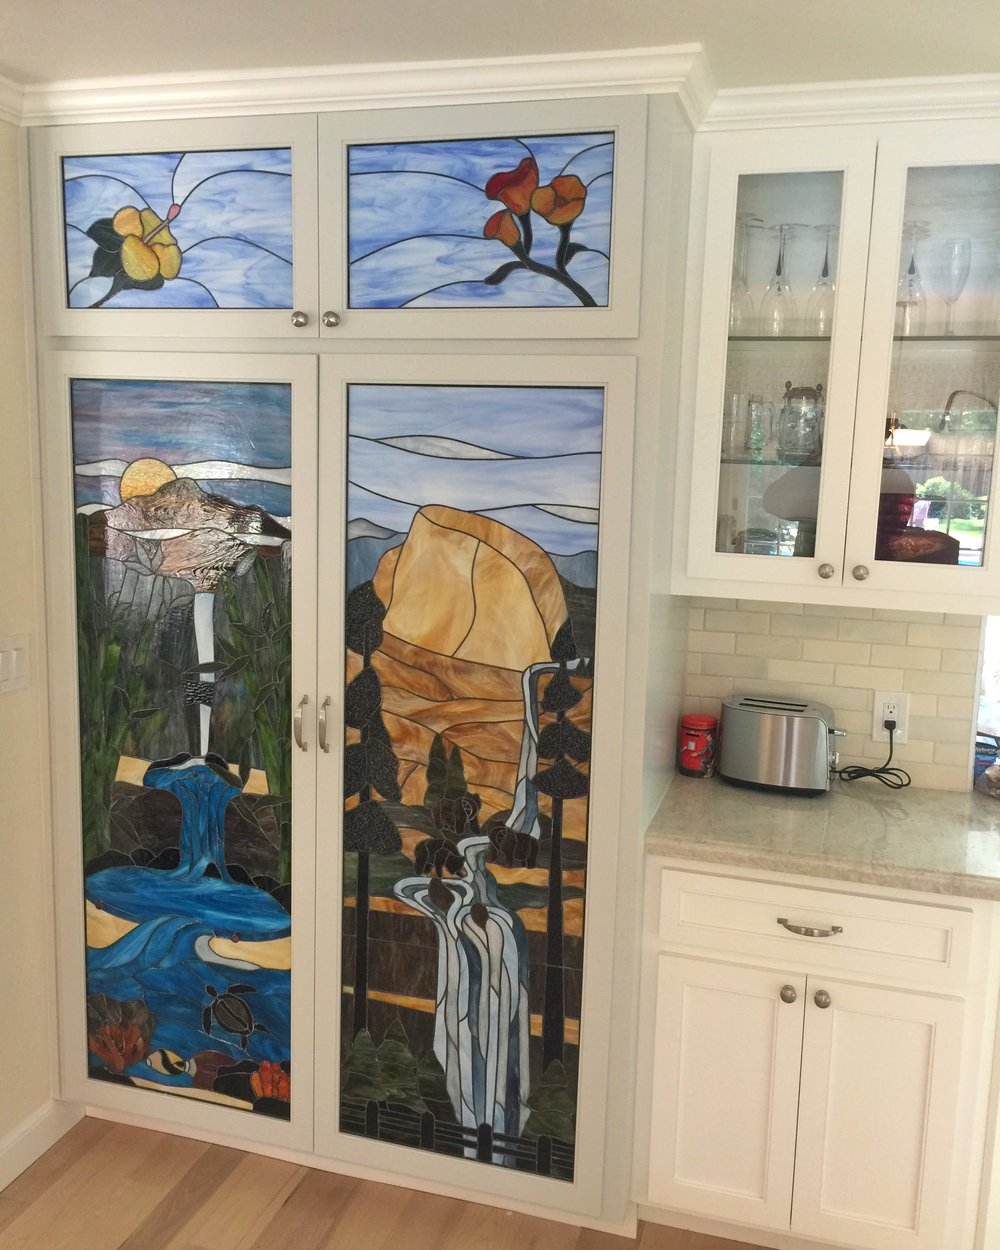 stained glass leaded glass design legacy glass studios menlo park bay area california custom design yosemite vernal falls misty trail california poppy hawaii hibiscus seven pools waterfalls humuhumu haleakala.jpg